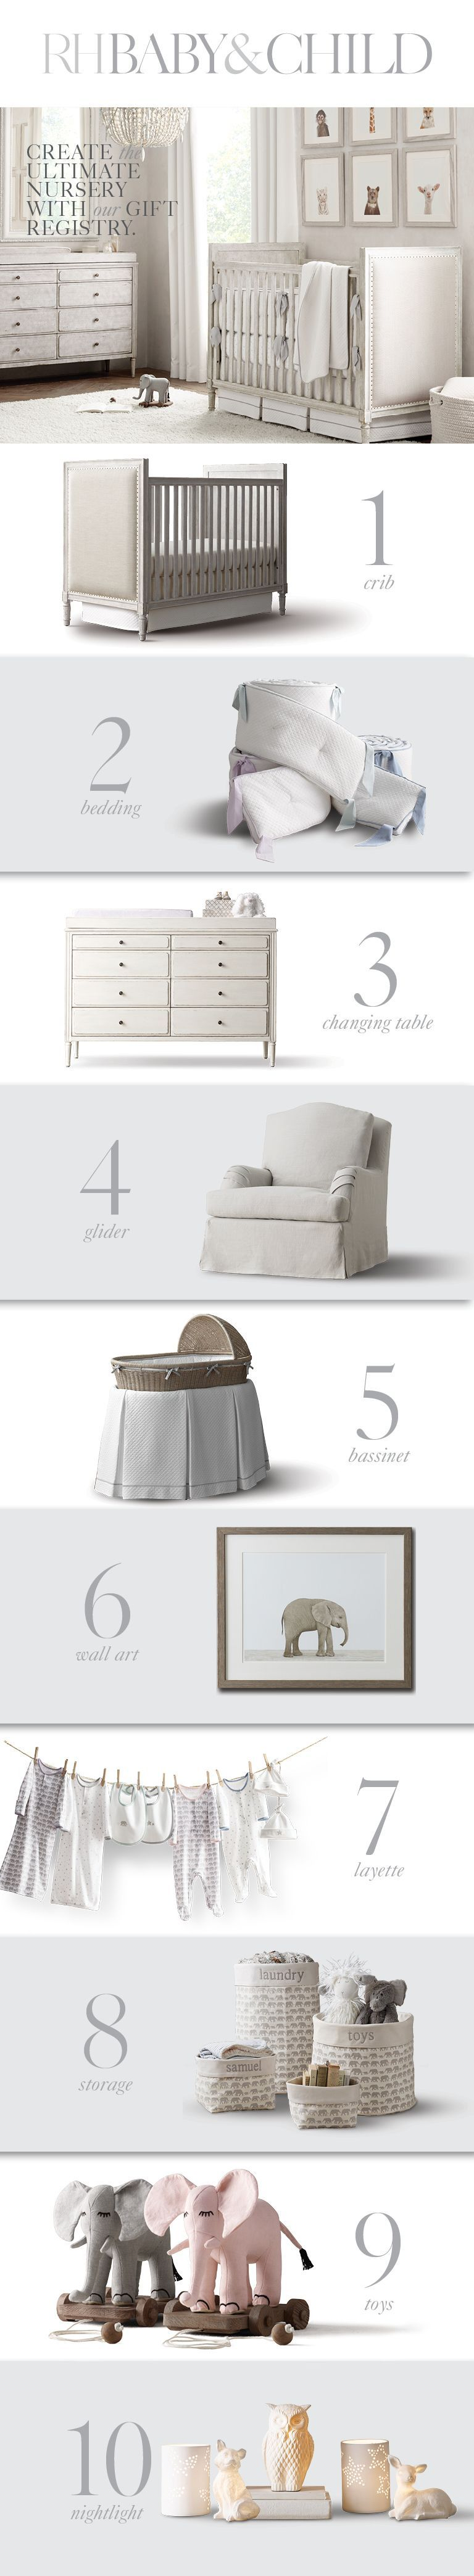 furnishings to accessories, bedding to decor, we've got everything you need to design your dream nursery. Create a registry with RH Baby & Child.